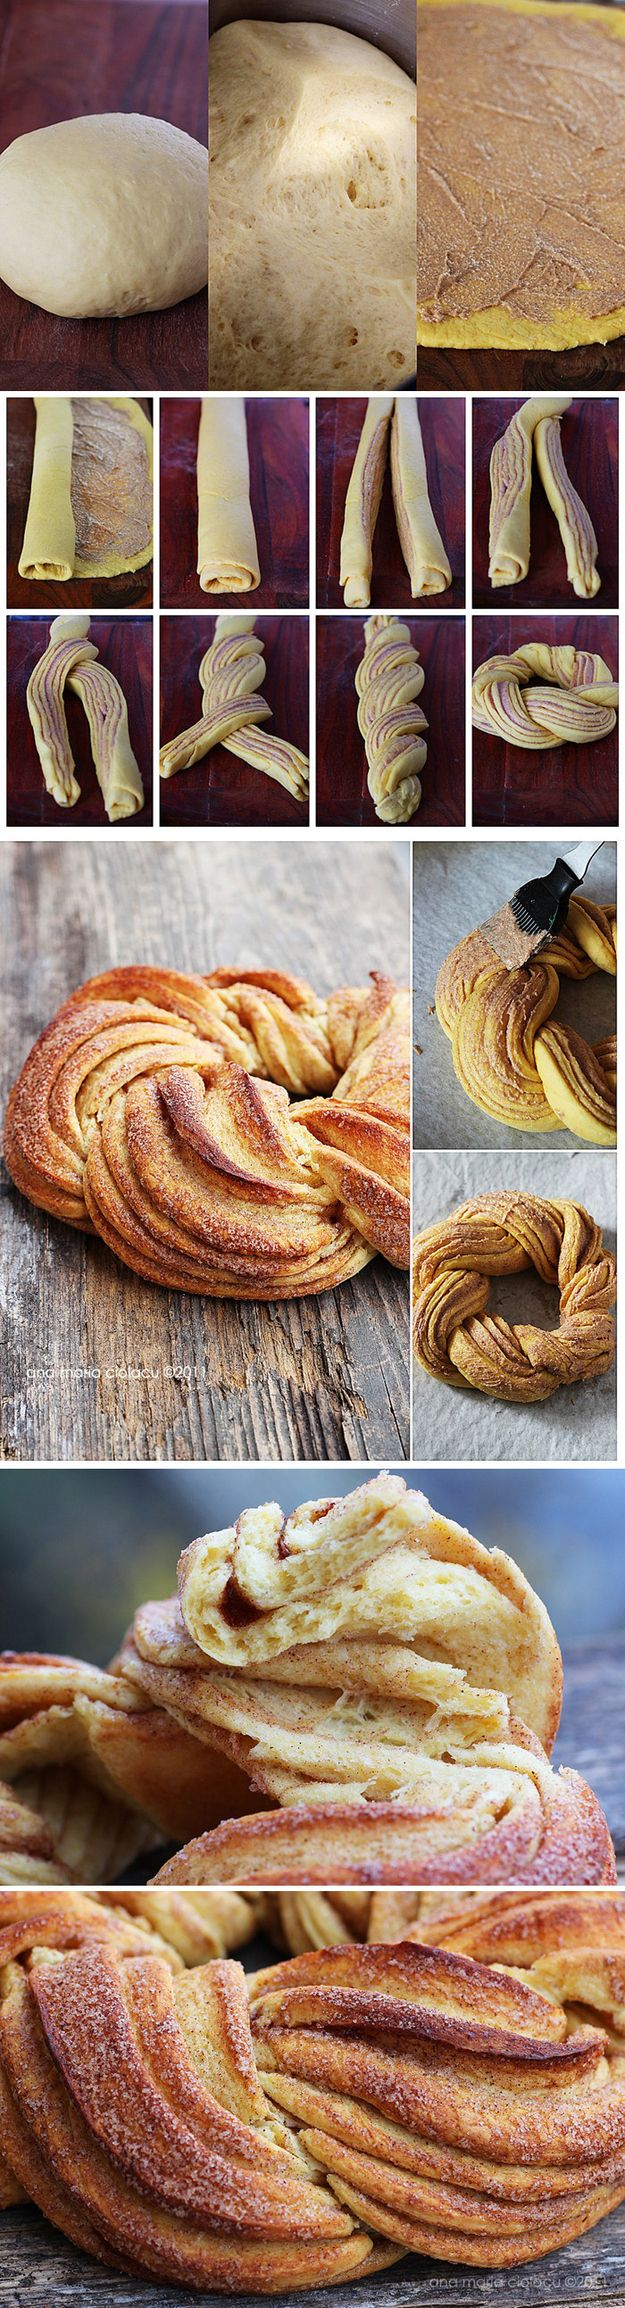 Estonian Braided Cinnamon Bread Is A Beautiful Miracle. My favorite is chocolate tho. Now I know how to make it!